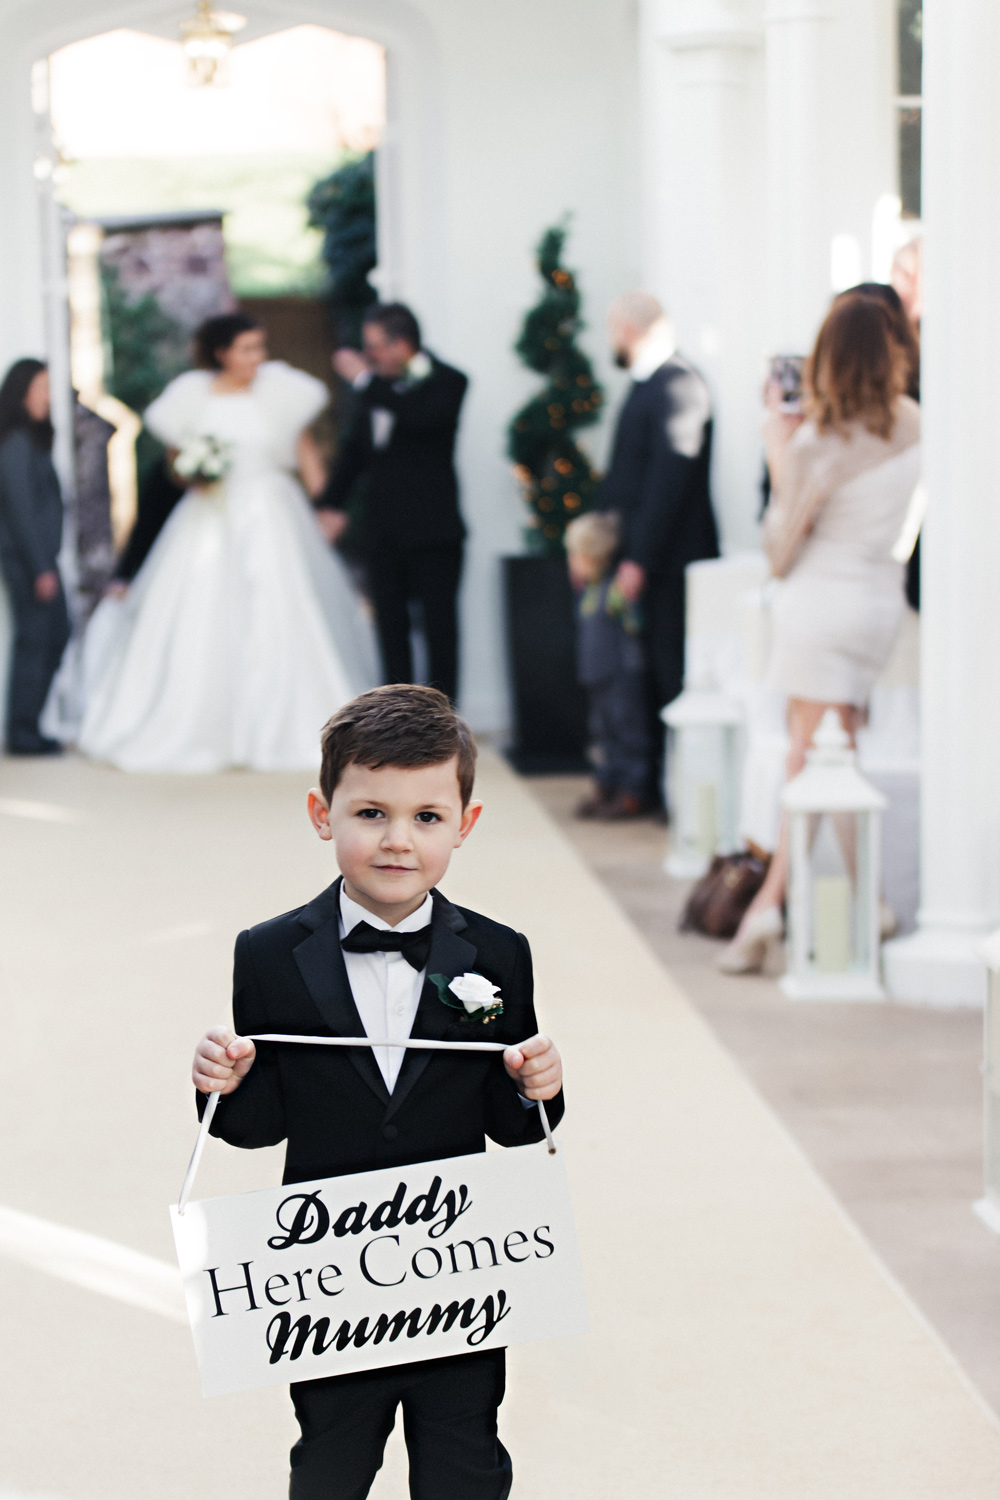 Ring-bearer-Wedding.jpg